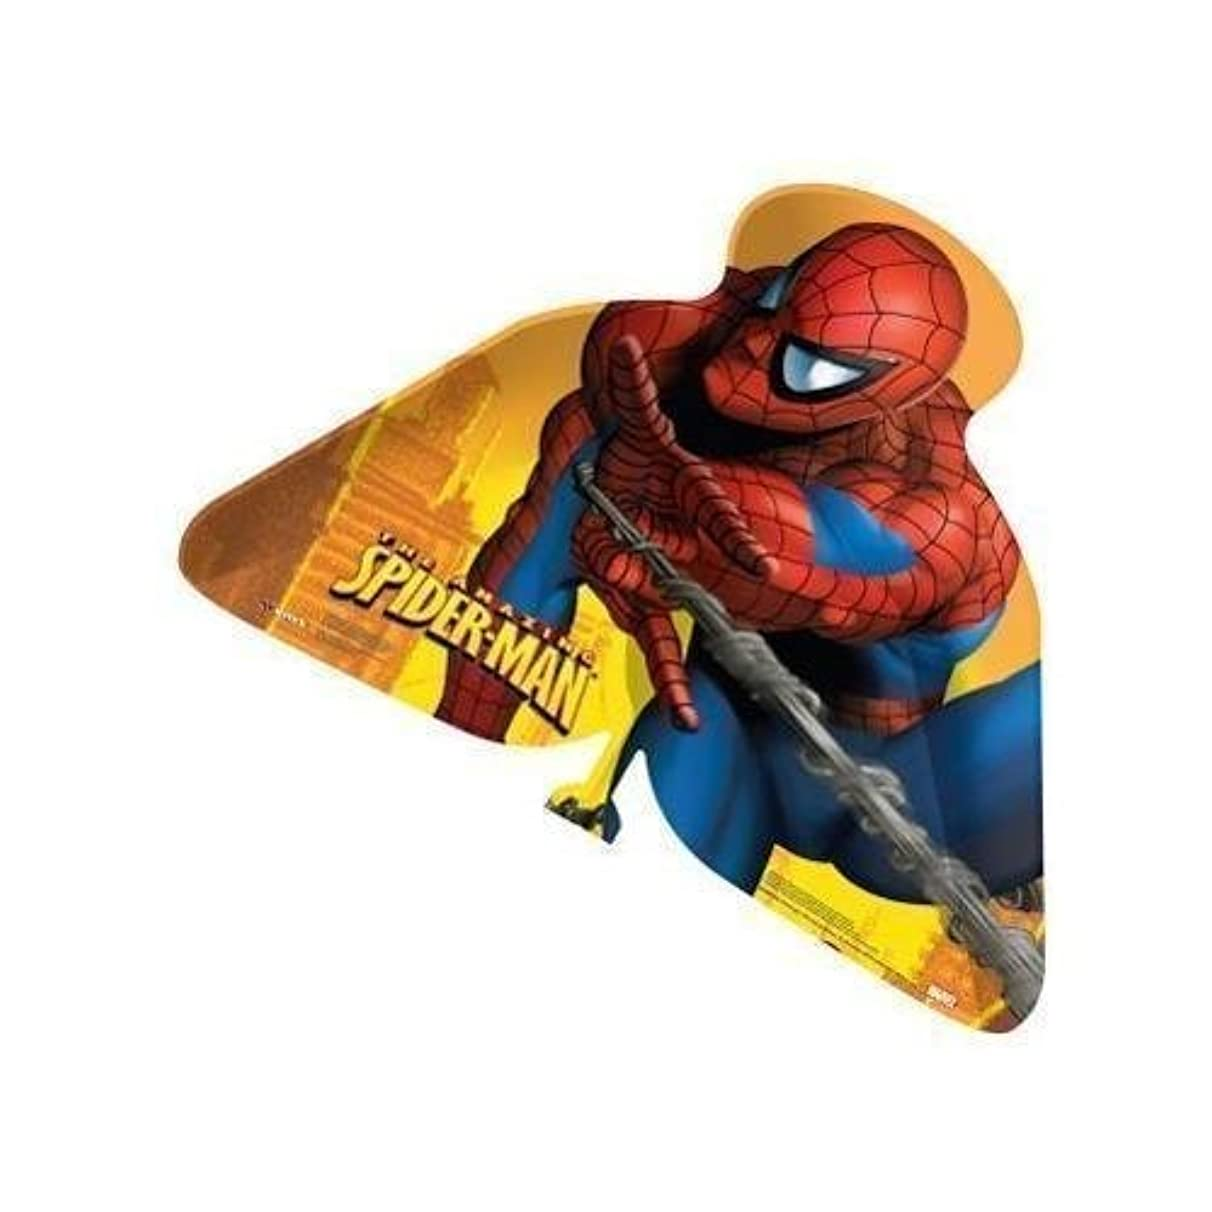 SPIDERMAN 33 INCH INFLATABLE KITE